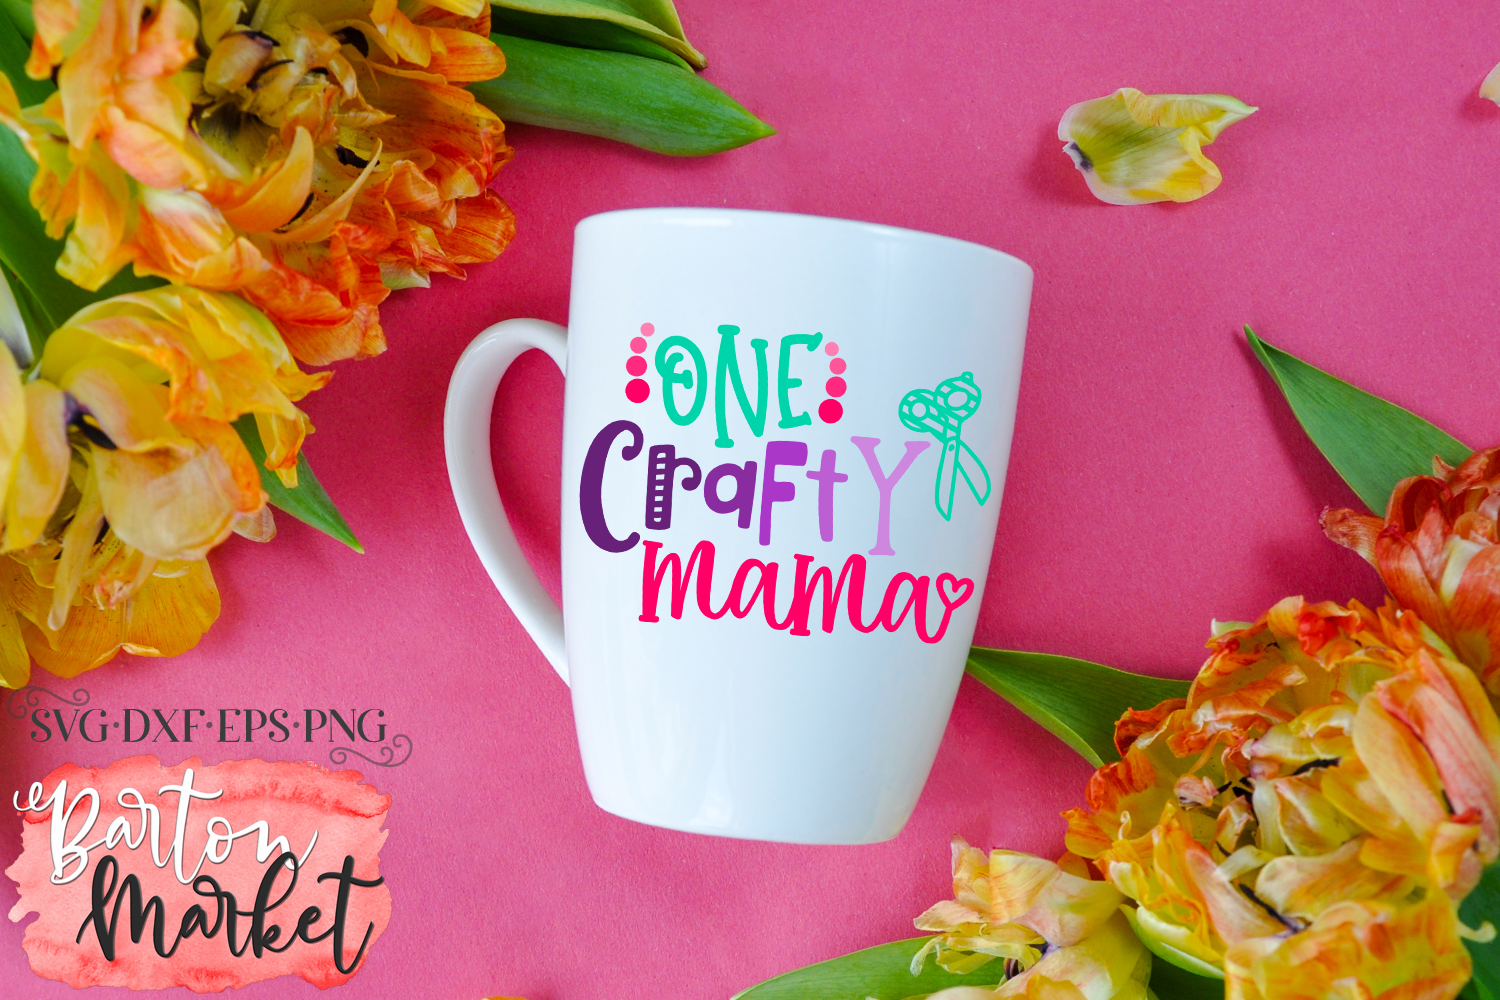 One Crafty Mama SVG DXF EPS PNG example image 3